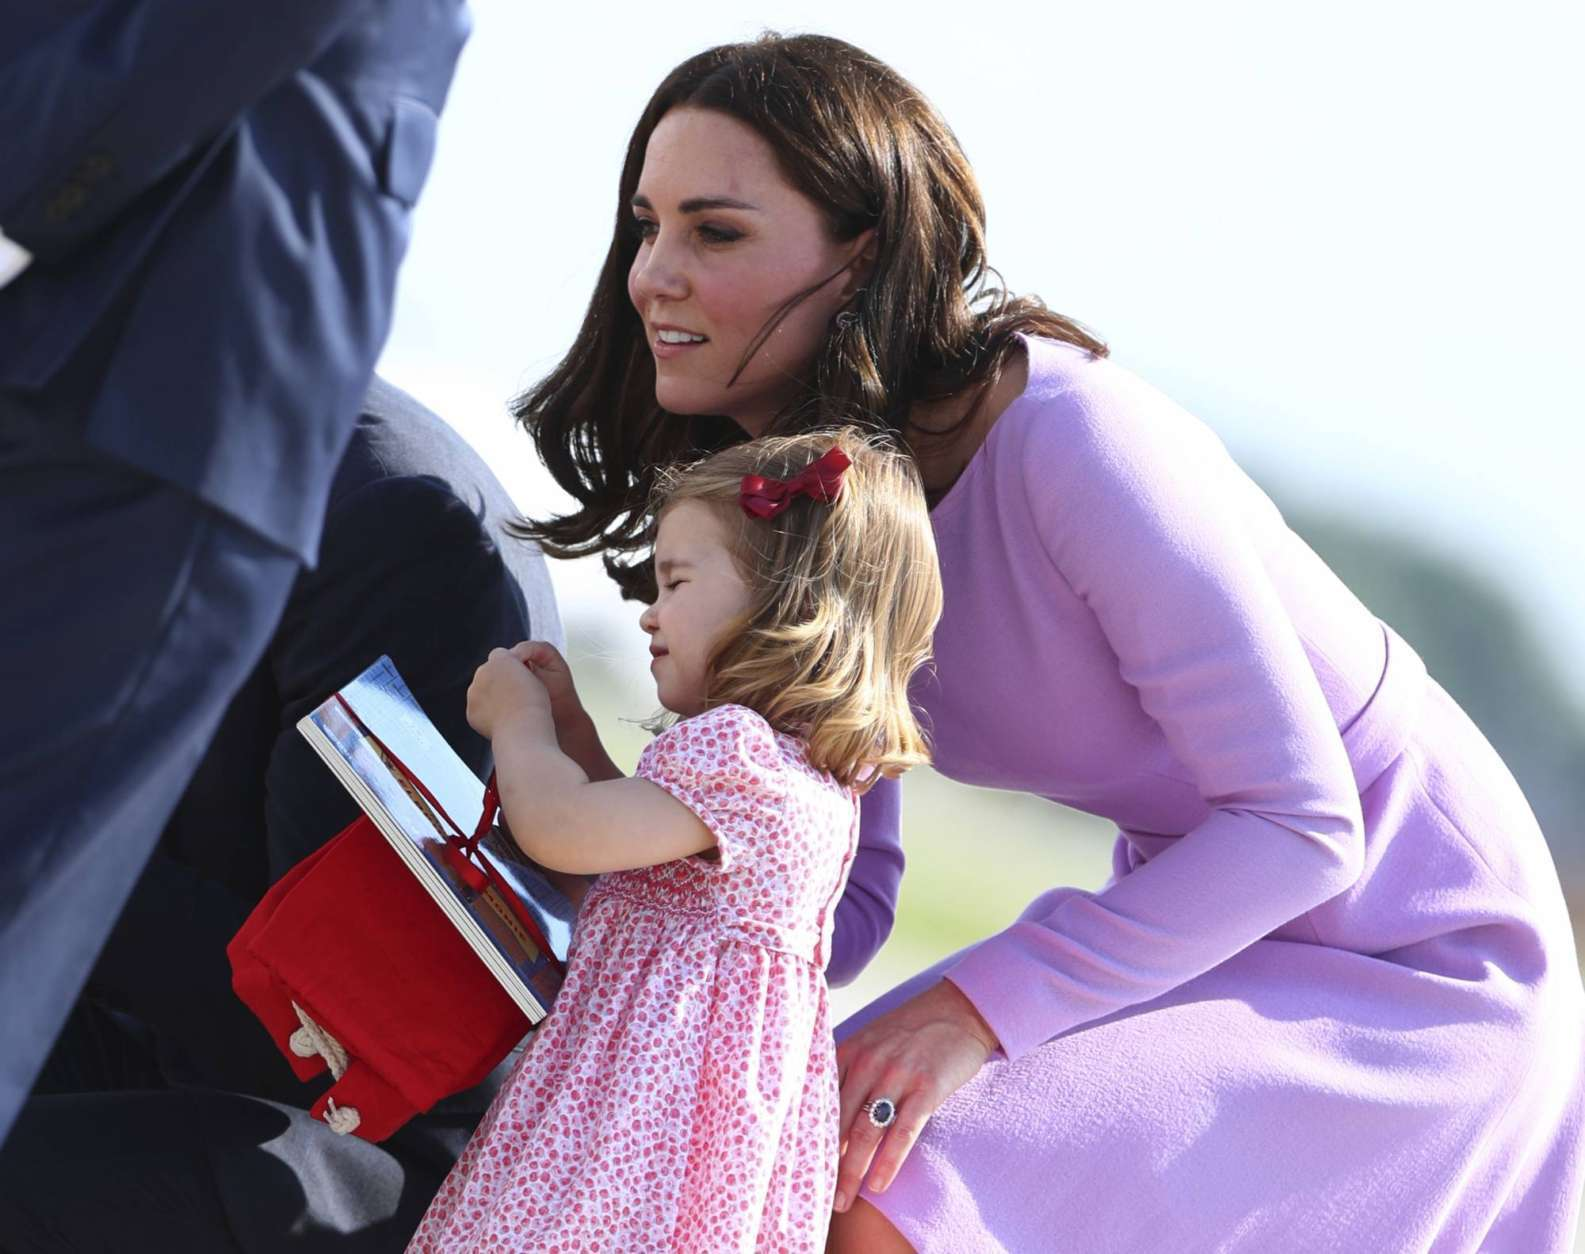 Britain's  Kate,  the Duchess of Cambridge boards a plane with her daughter Princess Charlotte in Hamburg, Germany, Friday, July 21, 2017.  (Christian Charisius/Pool Photo via AP)